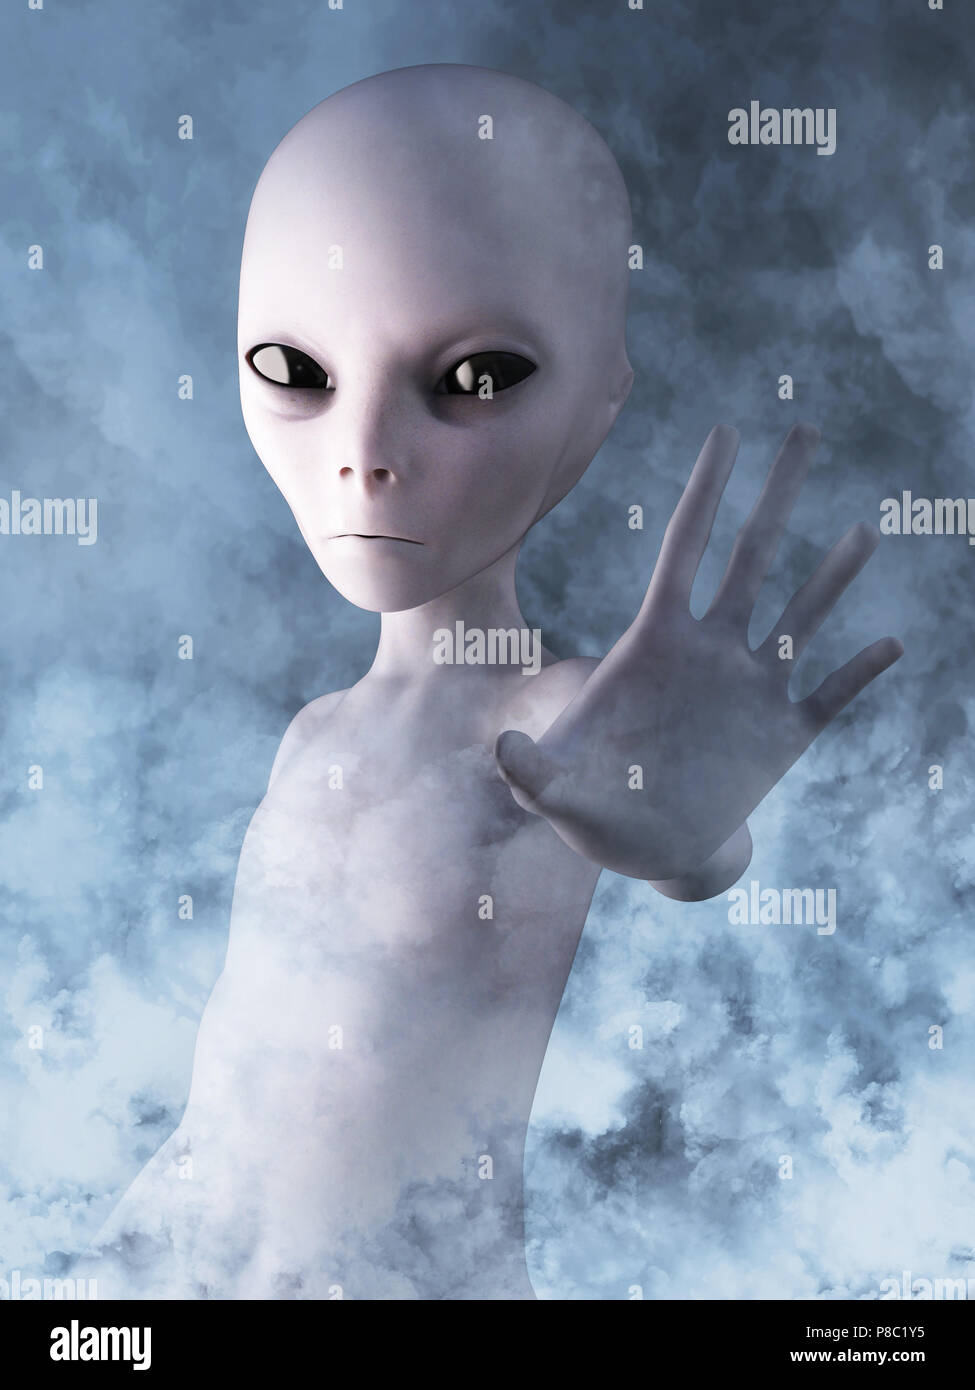 Alien reaching out its hand. He is surrounded by smoke or clouds like it's a dream, 3D rendering. - Stock Image